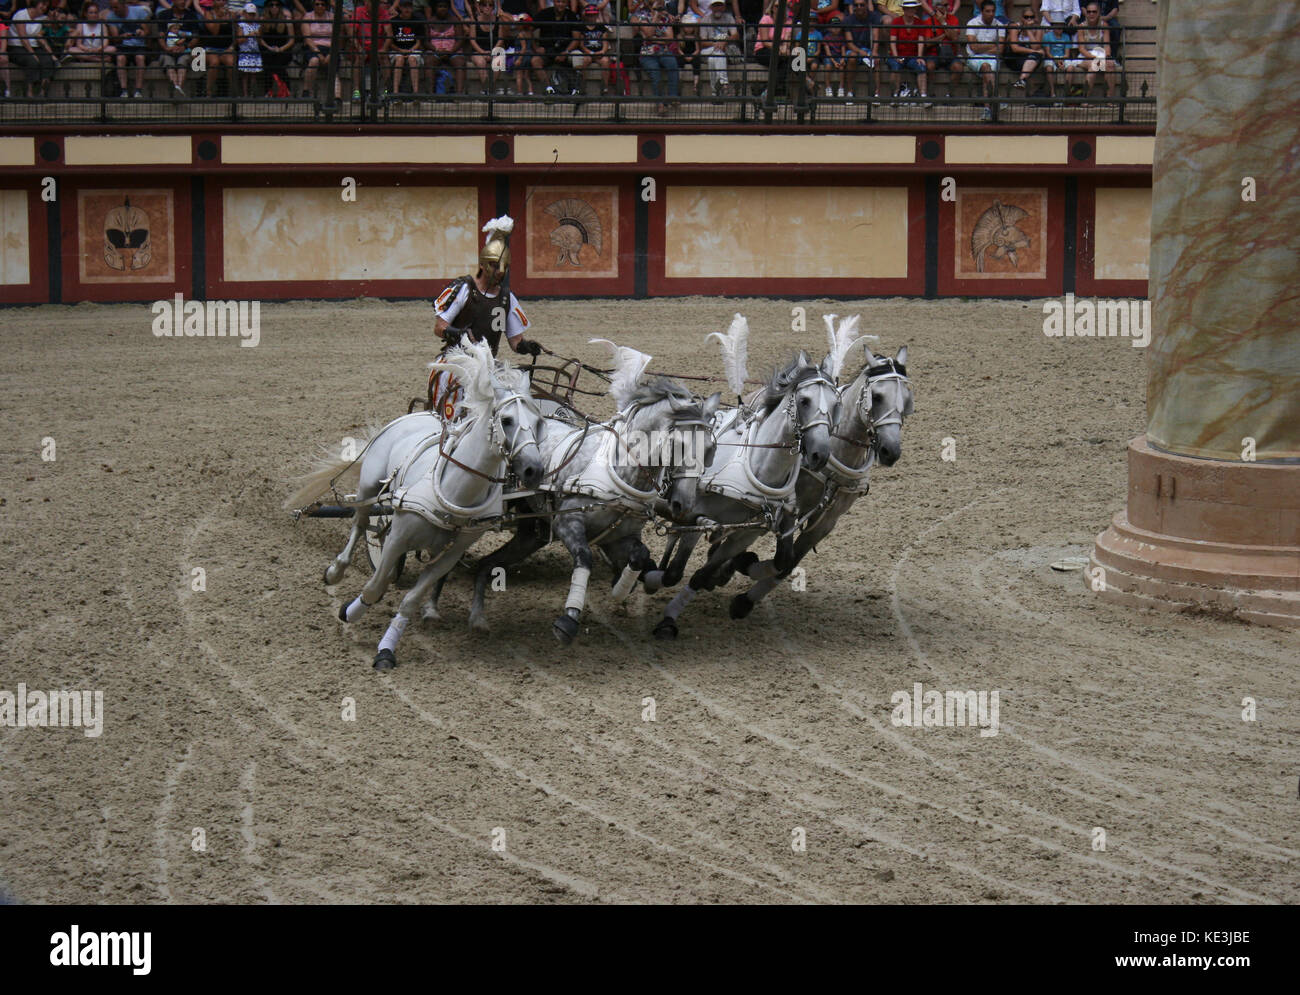 Chariot race in Roman circus - Stock Image